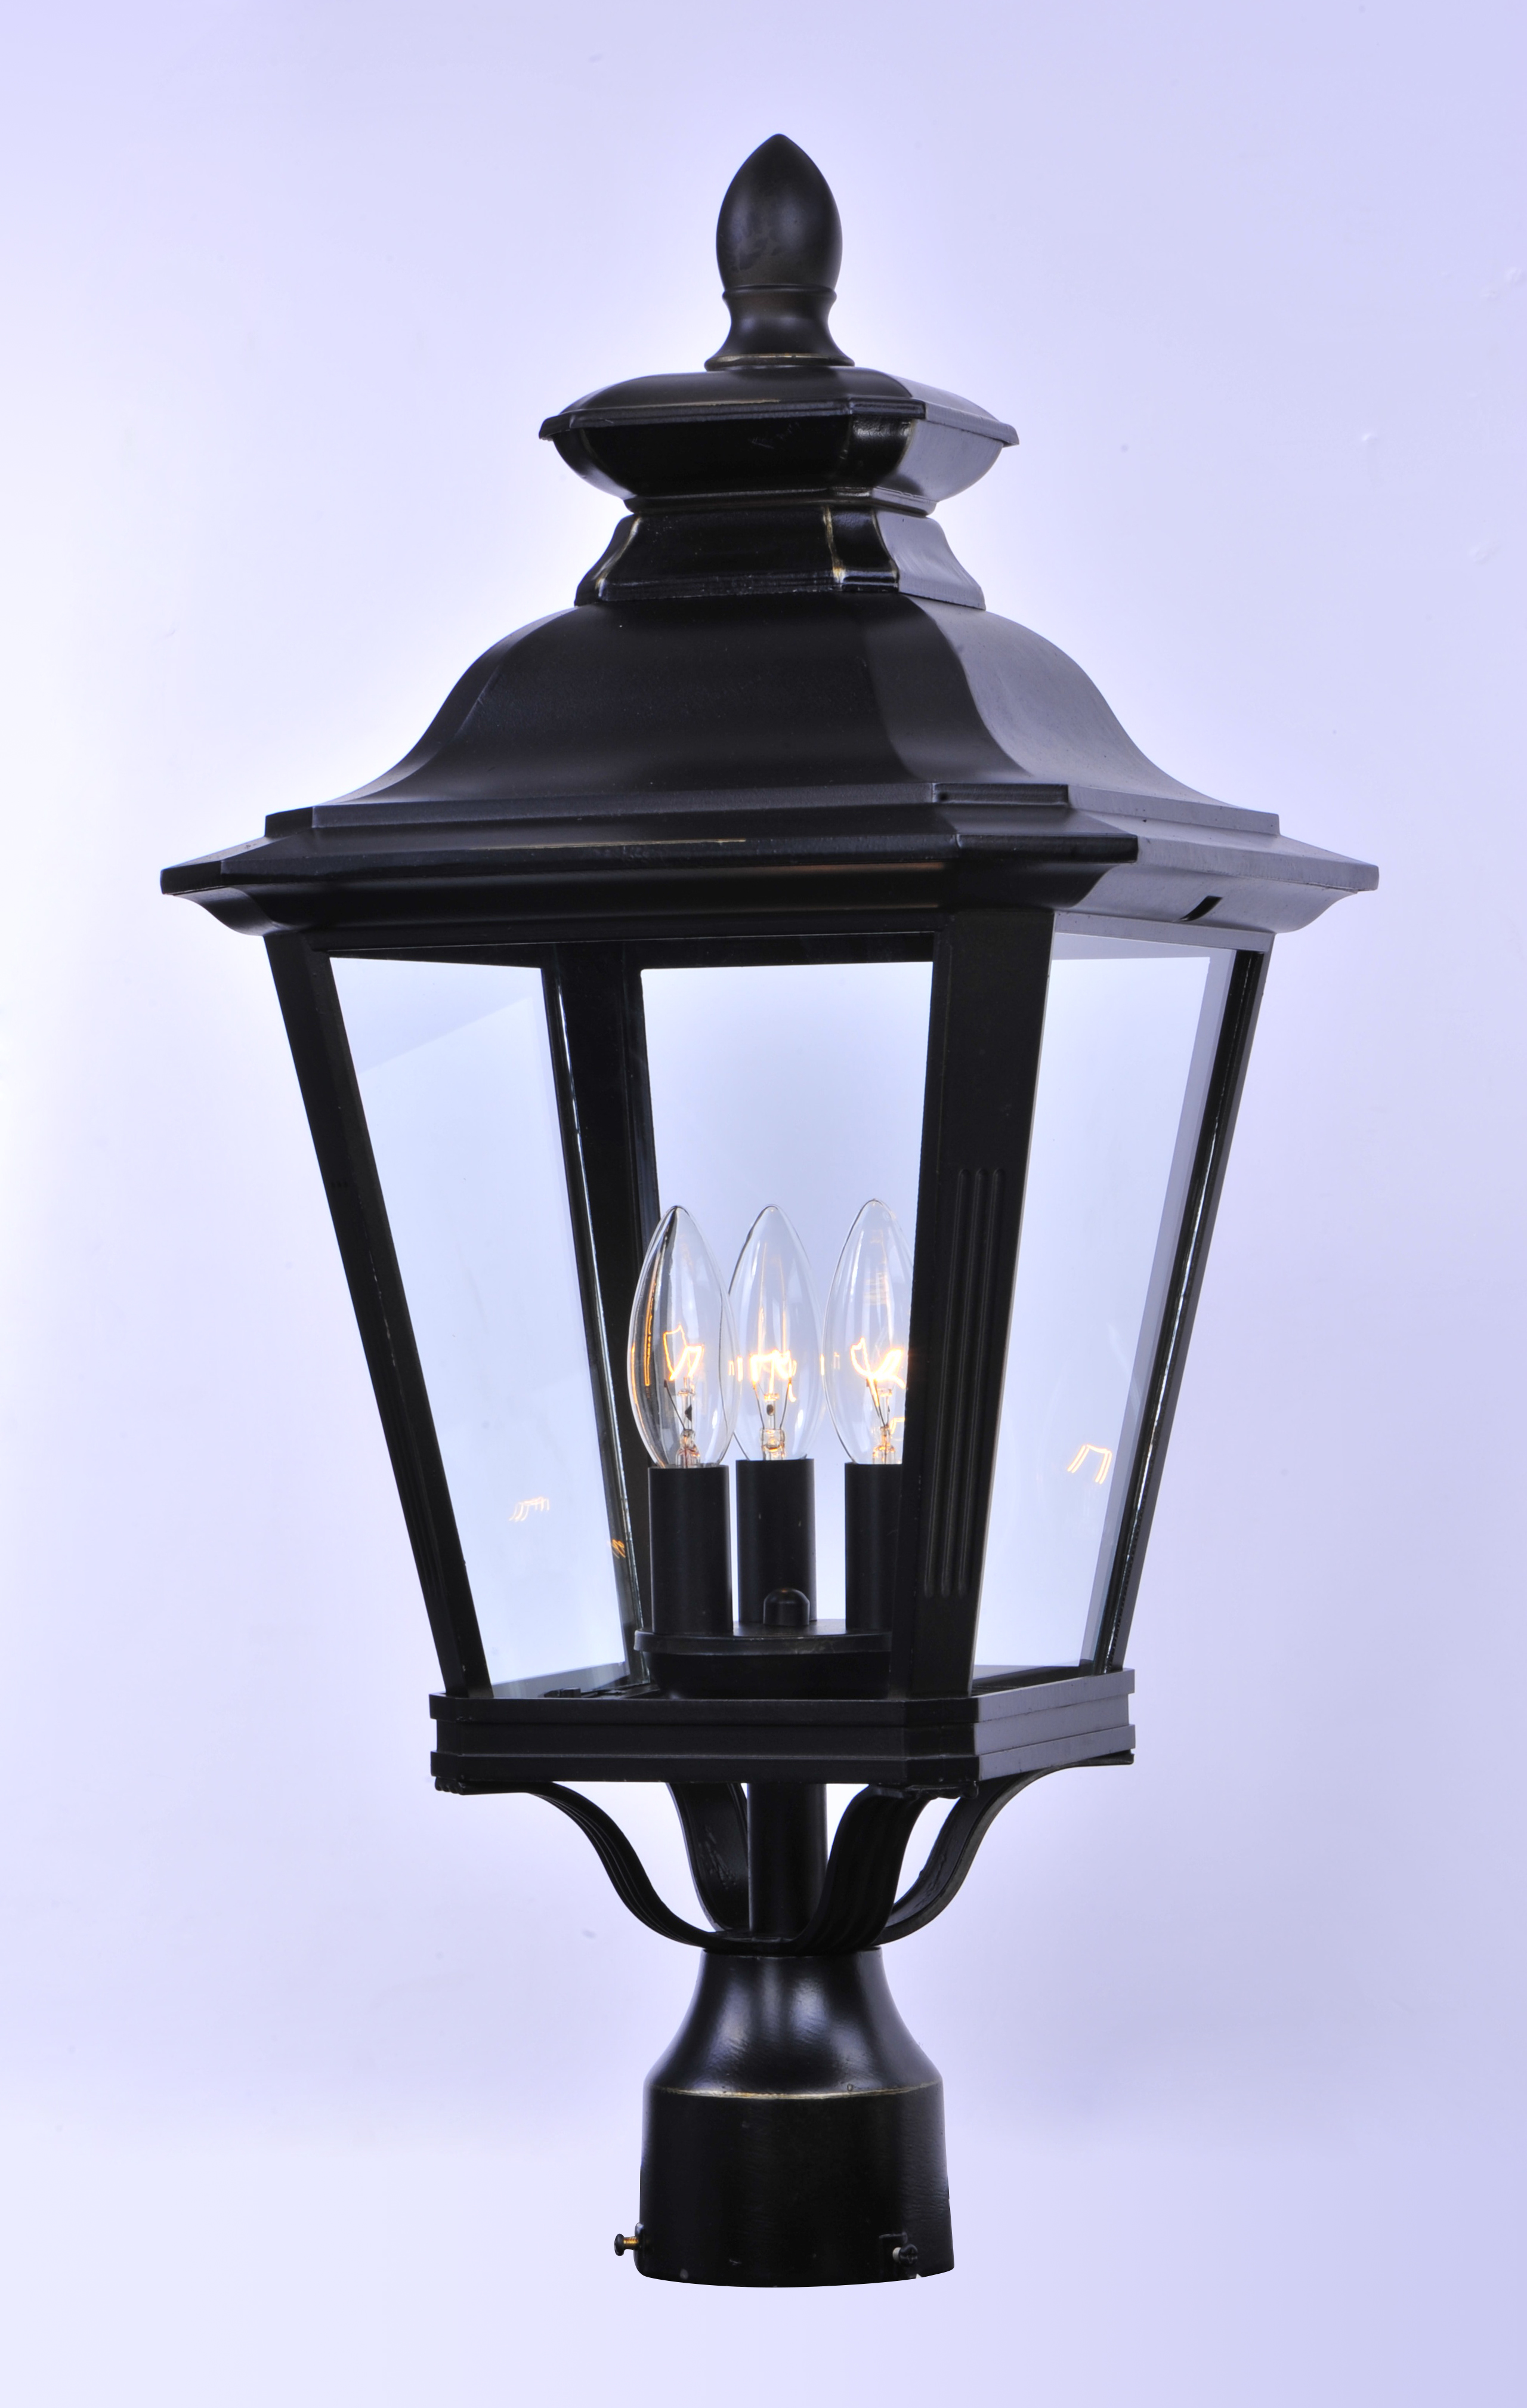 Knoxville 3 light outdoor post outdoor pole post mount for Outside yard lights